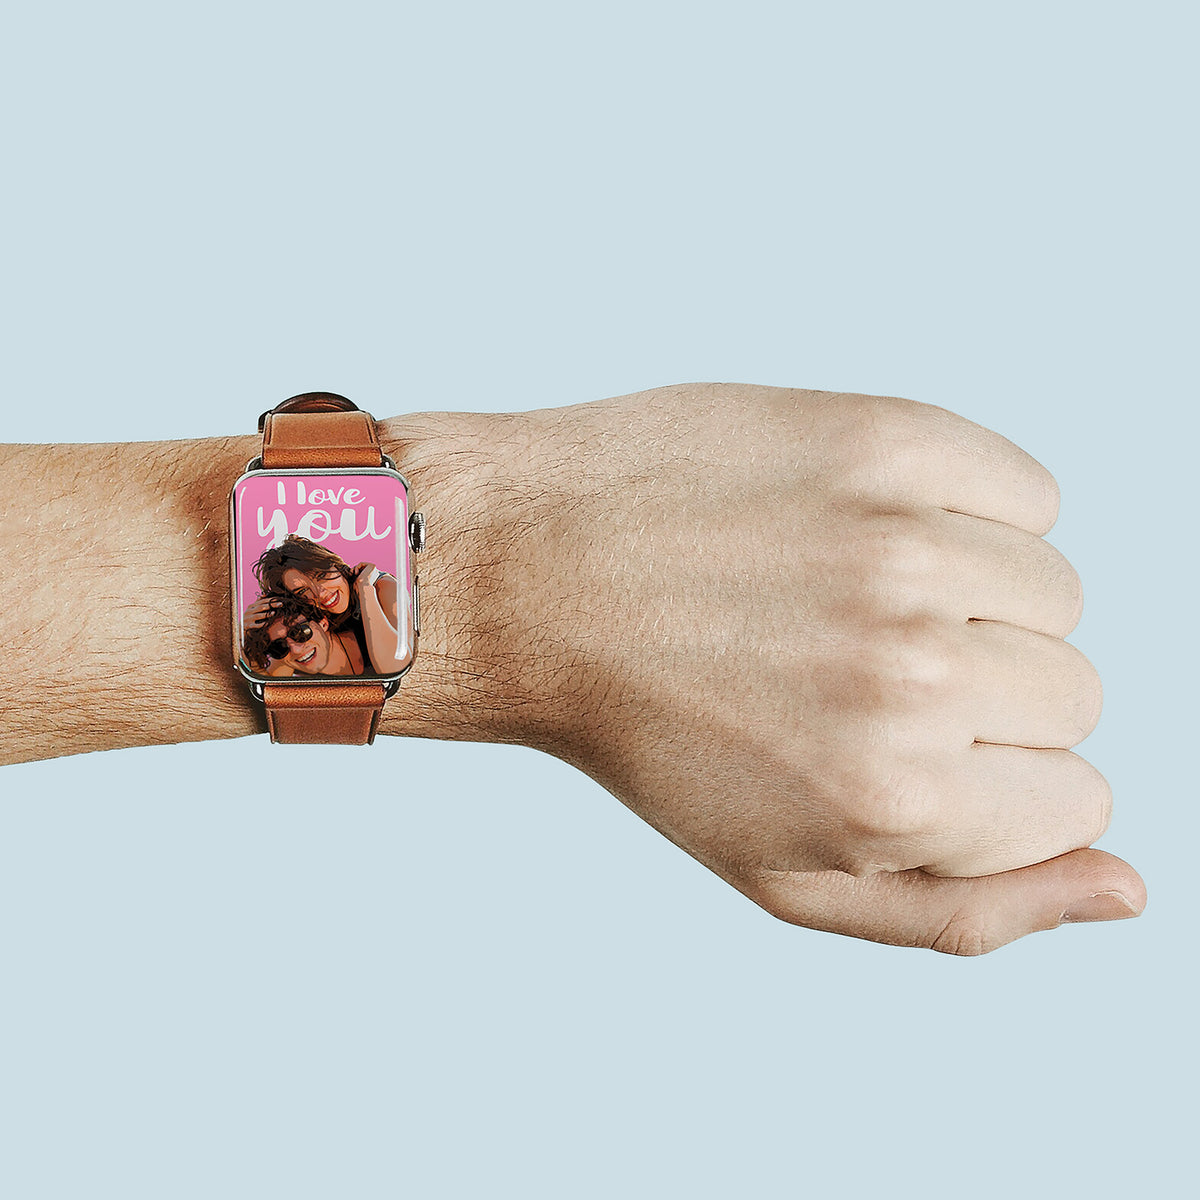 Pop art of happy couple on iWatch